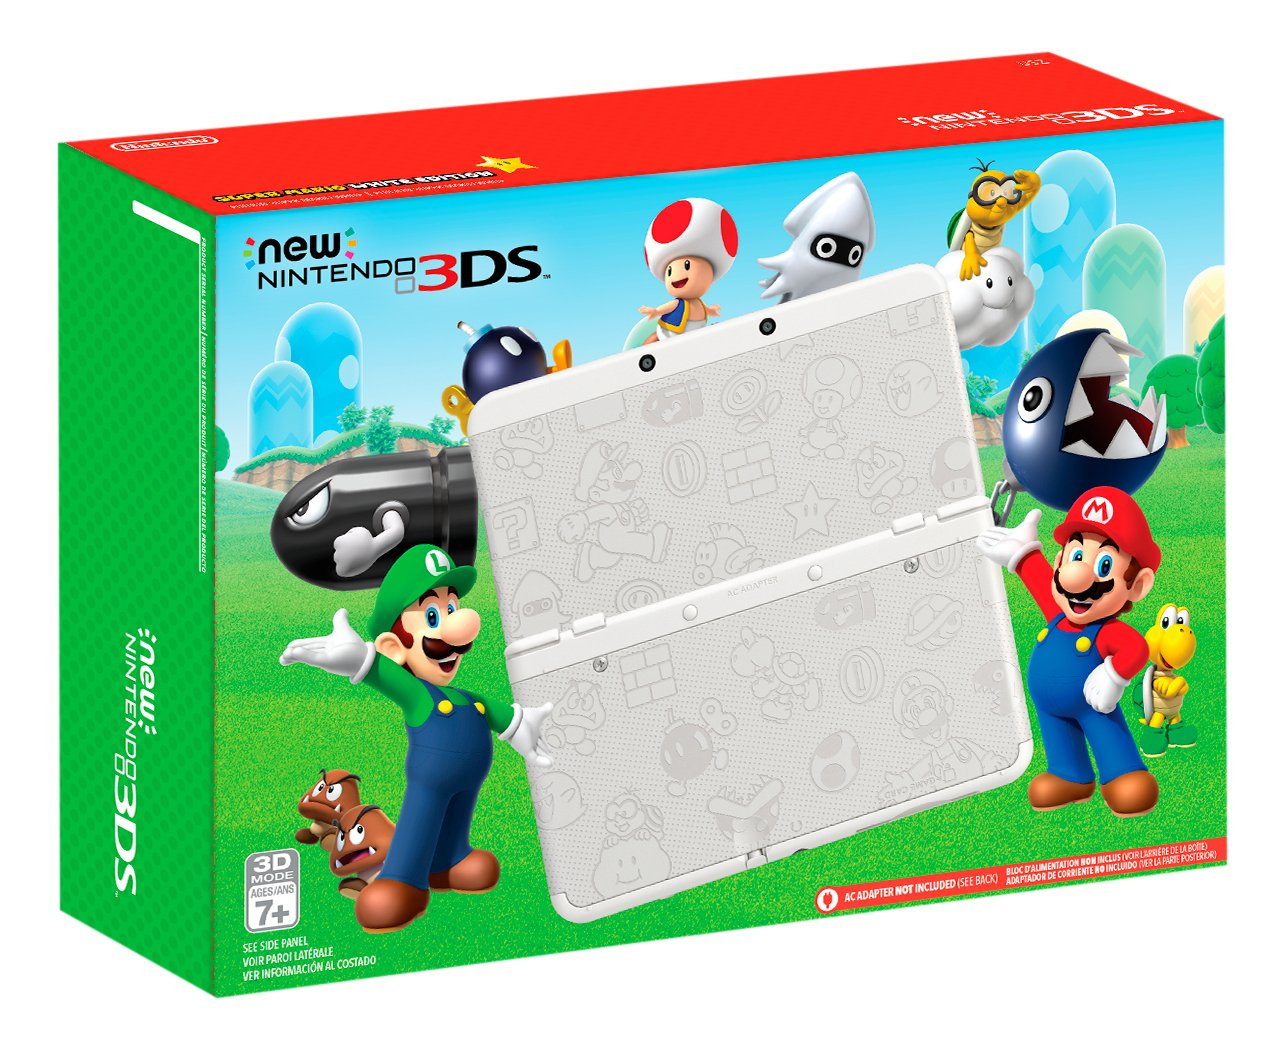 Nintendo New 3DS - Super Mario White Edition [Discontinued] by Nintendo